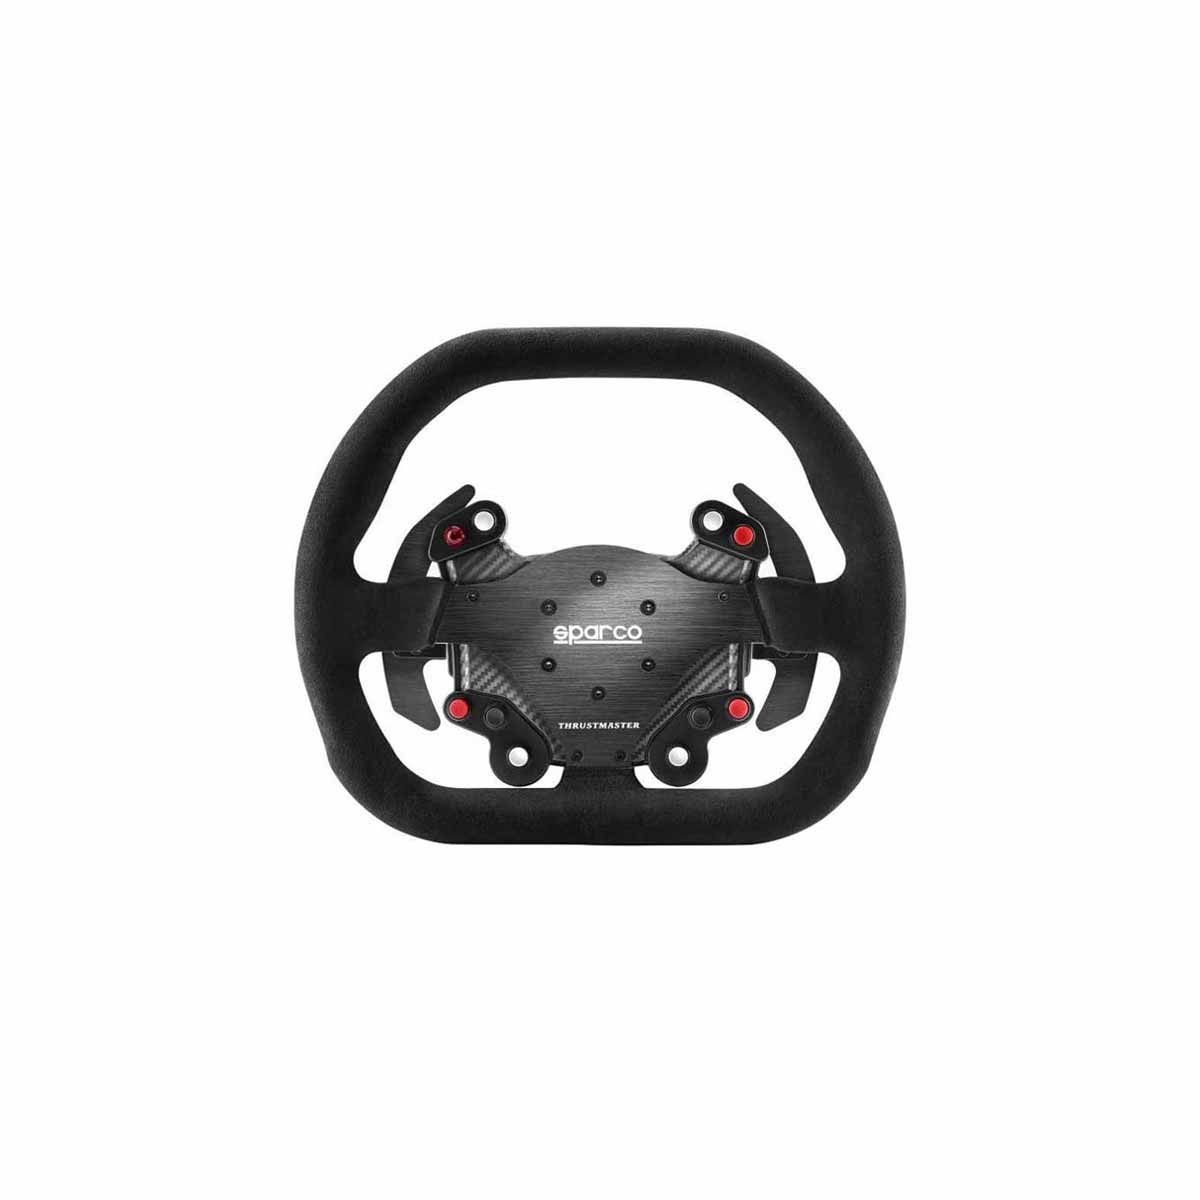 Sparco P310 Competition Mod Rim Add-On for Thrustmaster